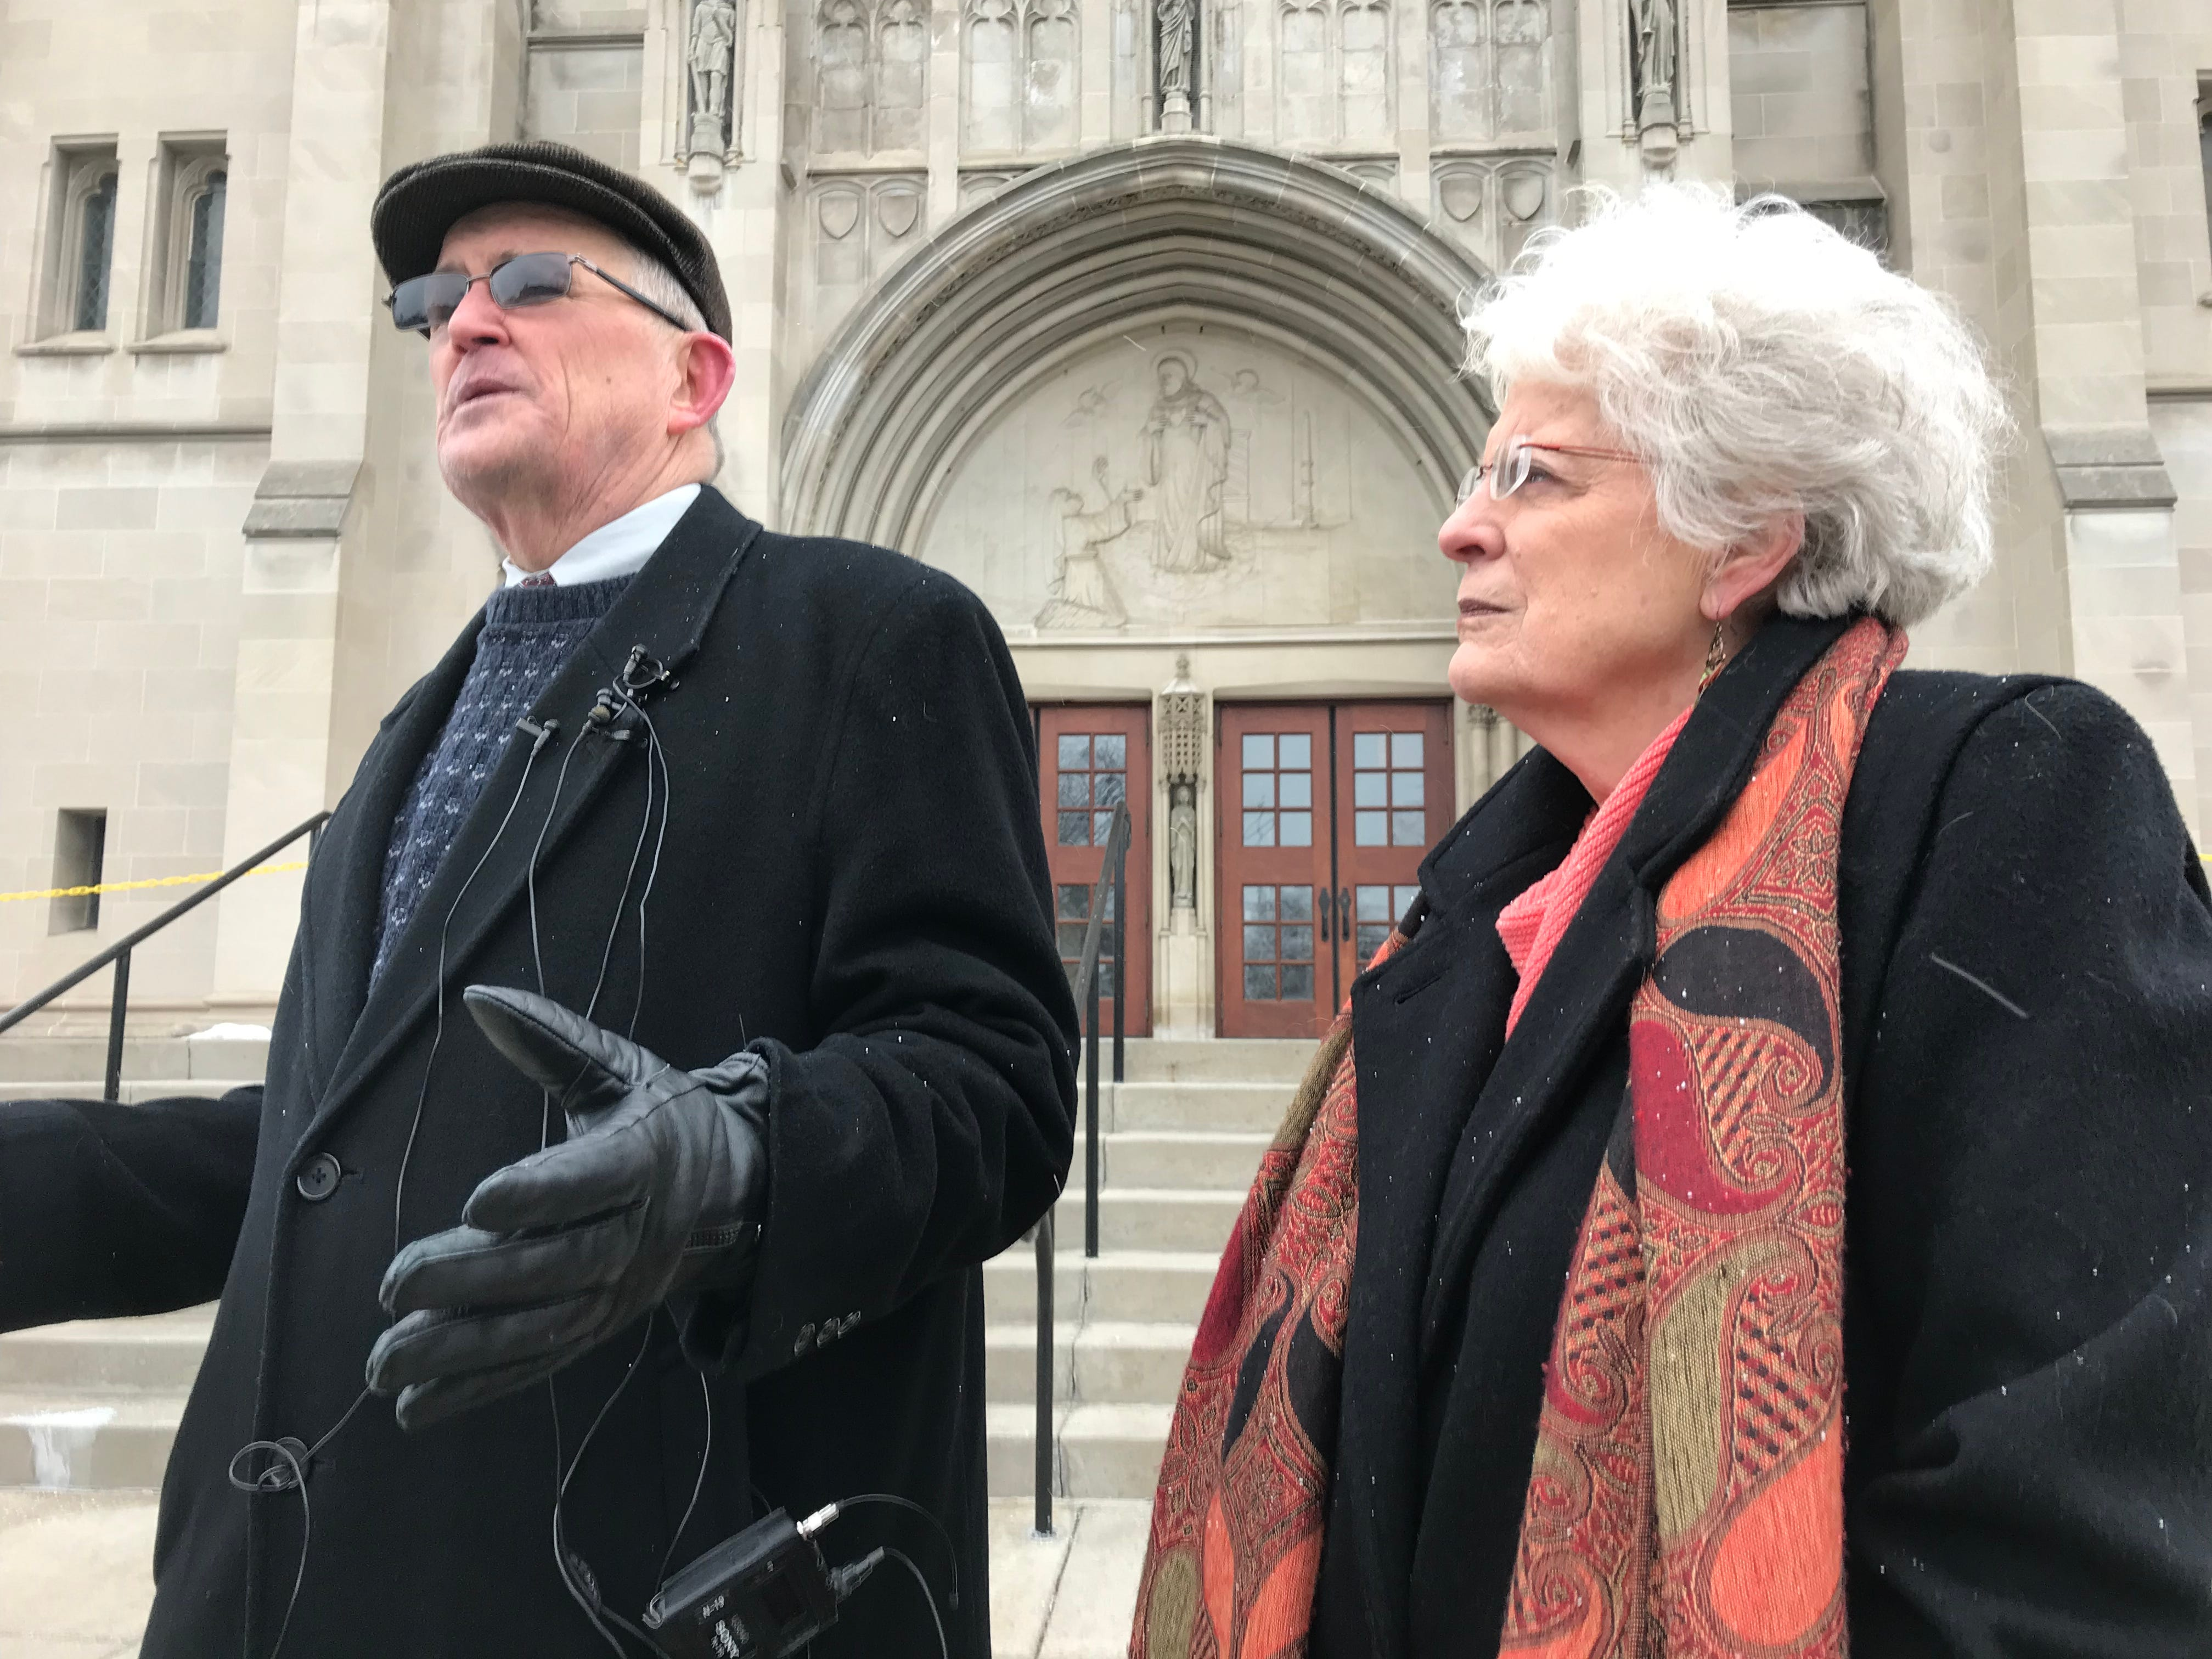 Victims call for Bishop Matano to release sex abuse files